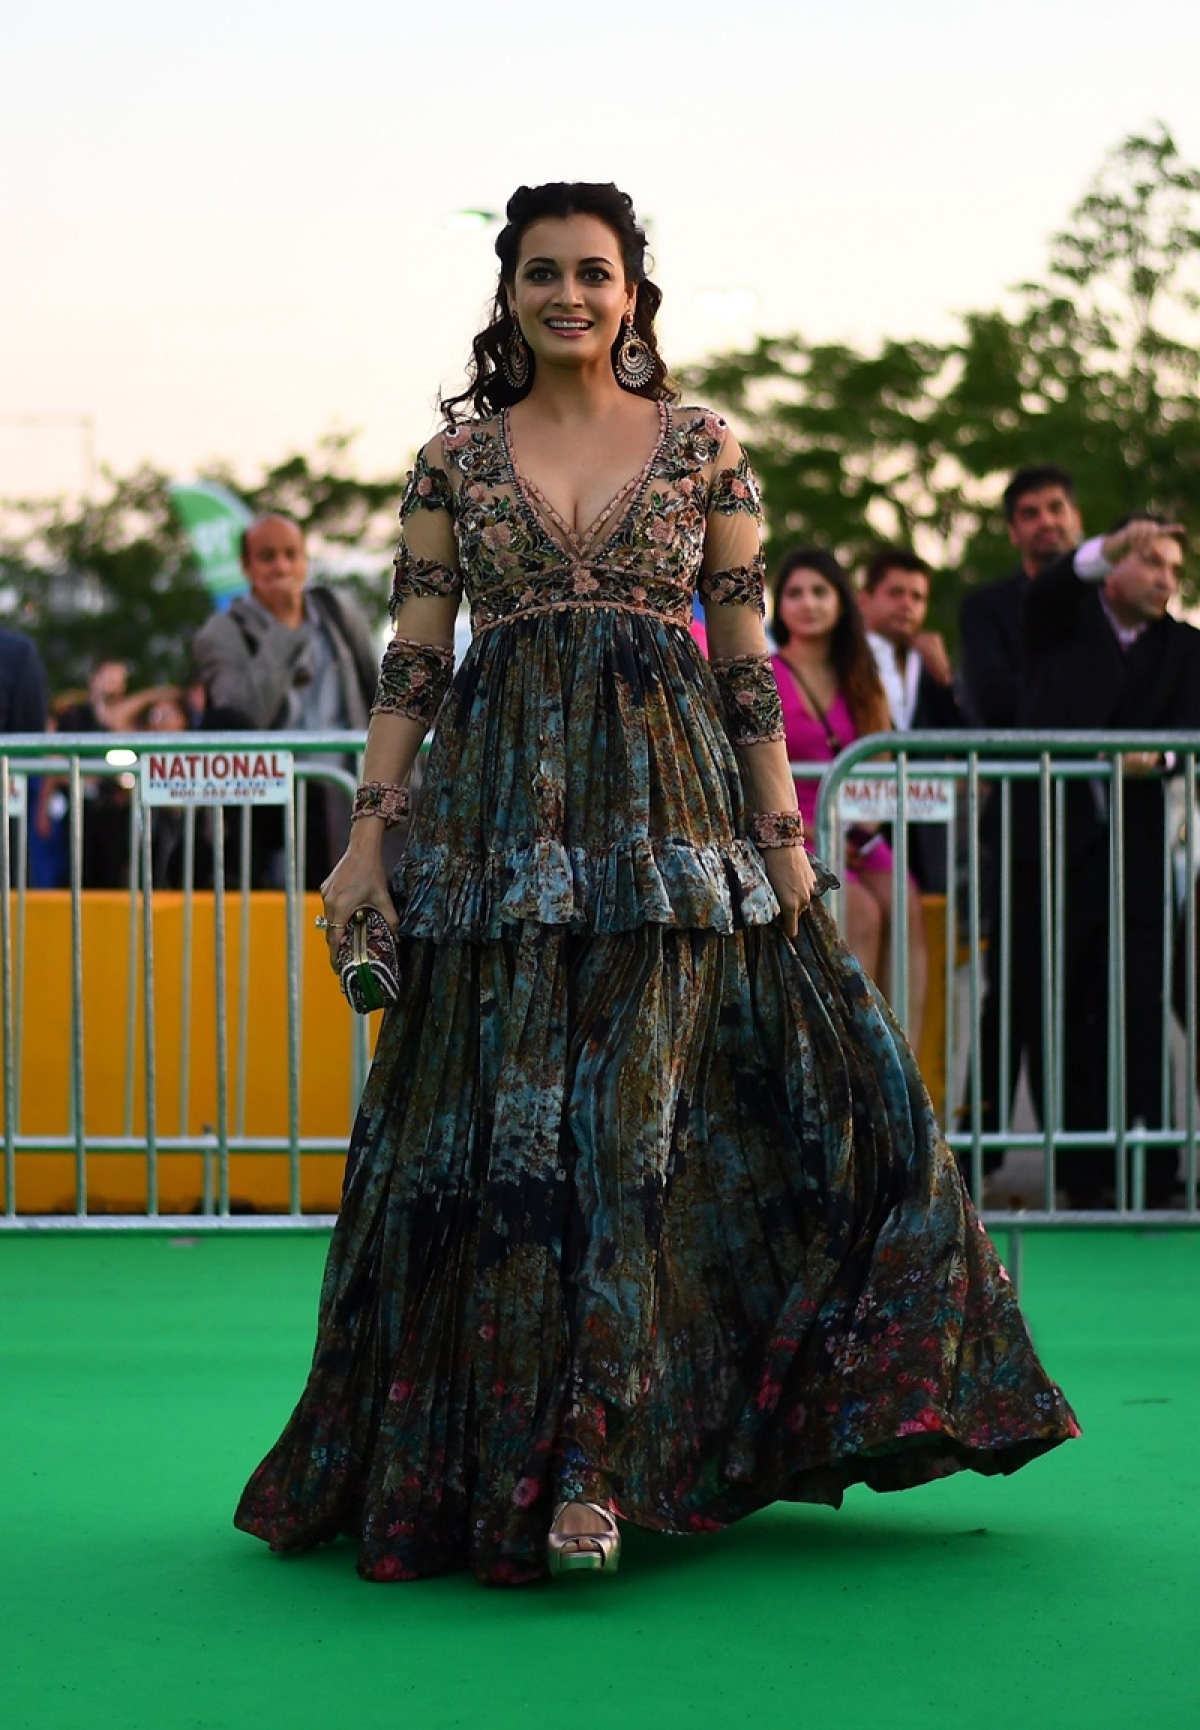 Bollywood actress Dia Mirza arrives for the IIFA Awards of the 18th International Indian Film Academy (IIFA) Festival at the MetLife Stadium in East Rutherford, New Jersey, on July 15, 2017. / AFP PHOTO / JEWEL SAMAD